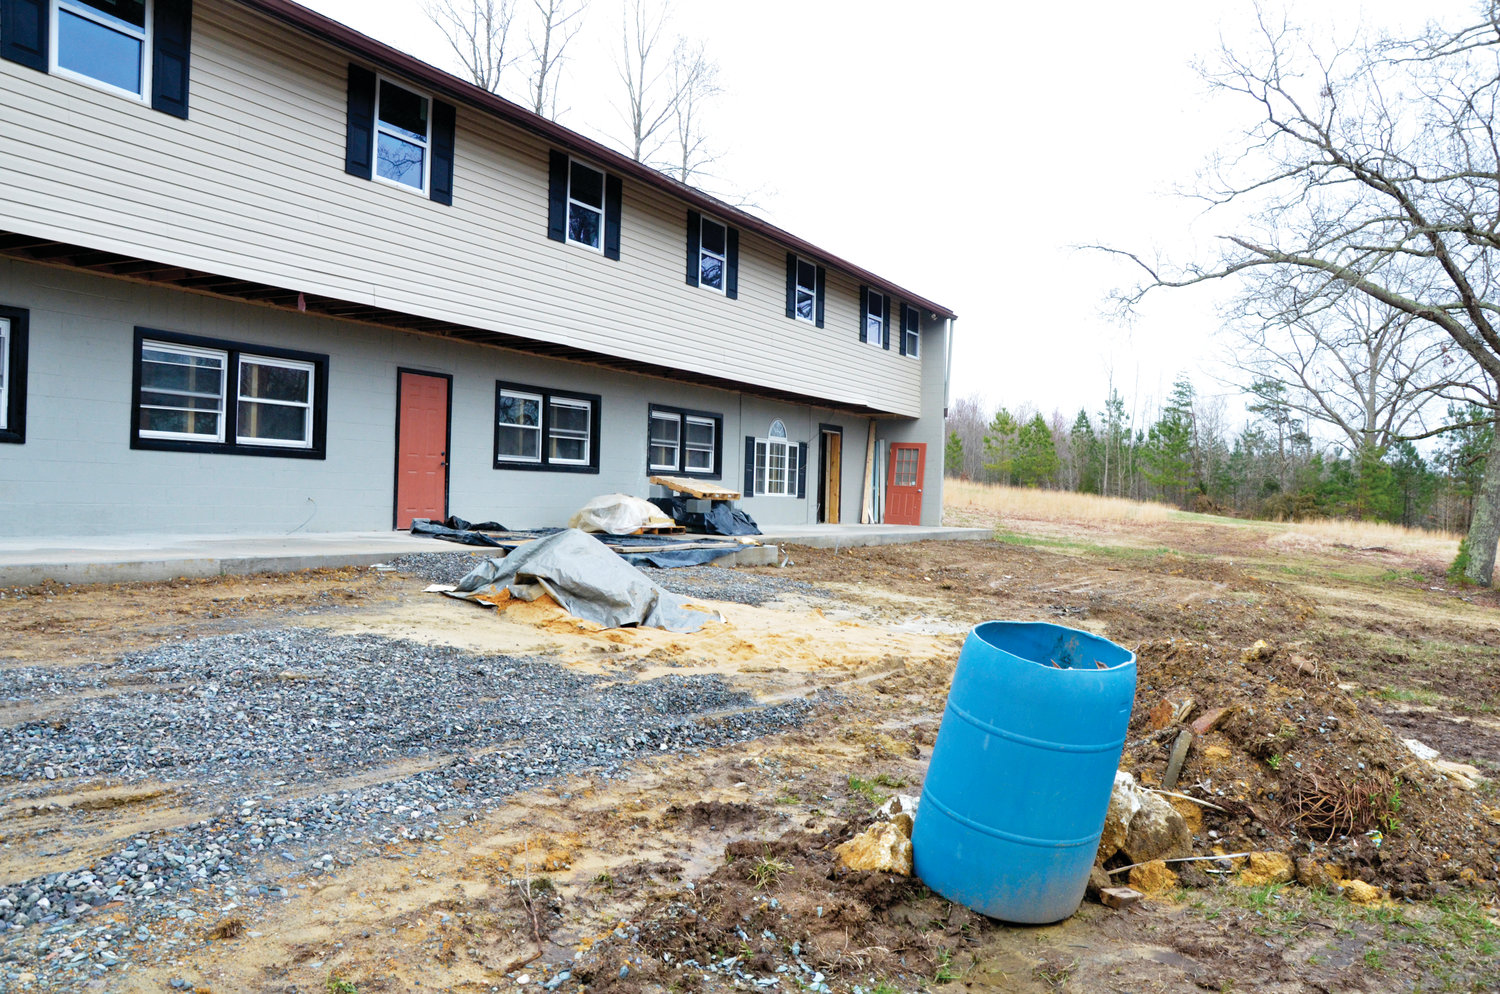 Wet weather has created some delays in work, but Ebenzer officials plan to open its seventh foster care home, their first in Chatham County, this summer.